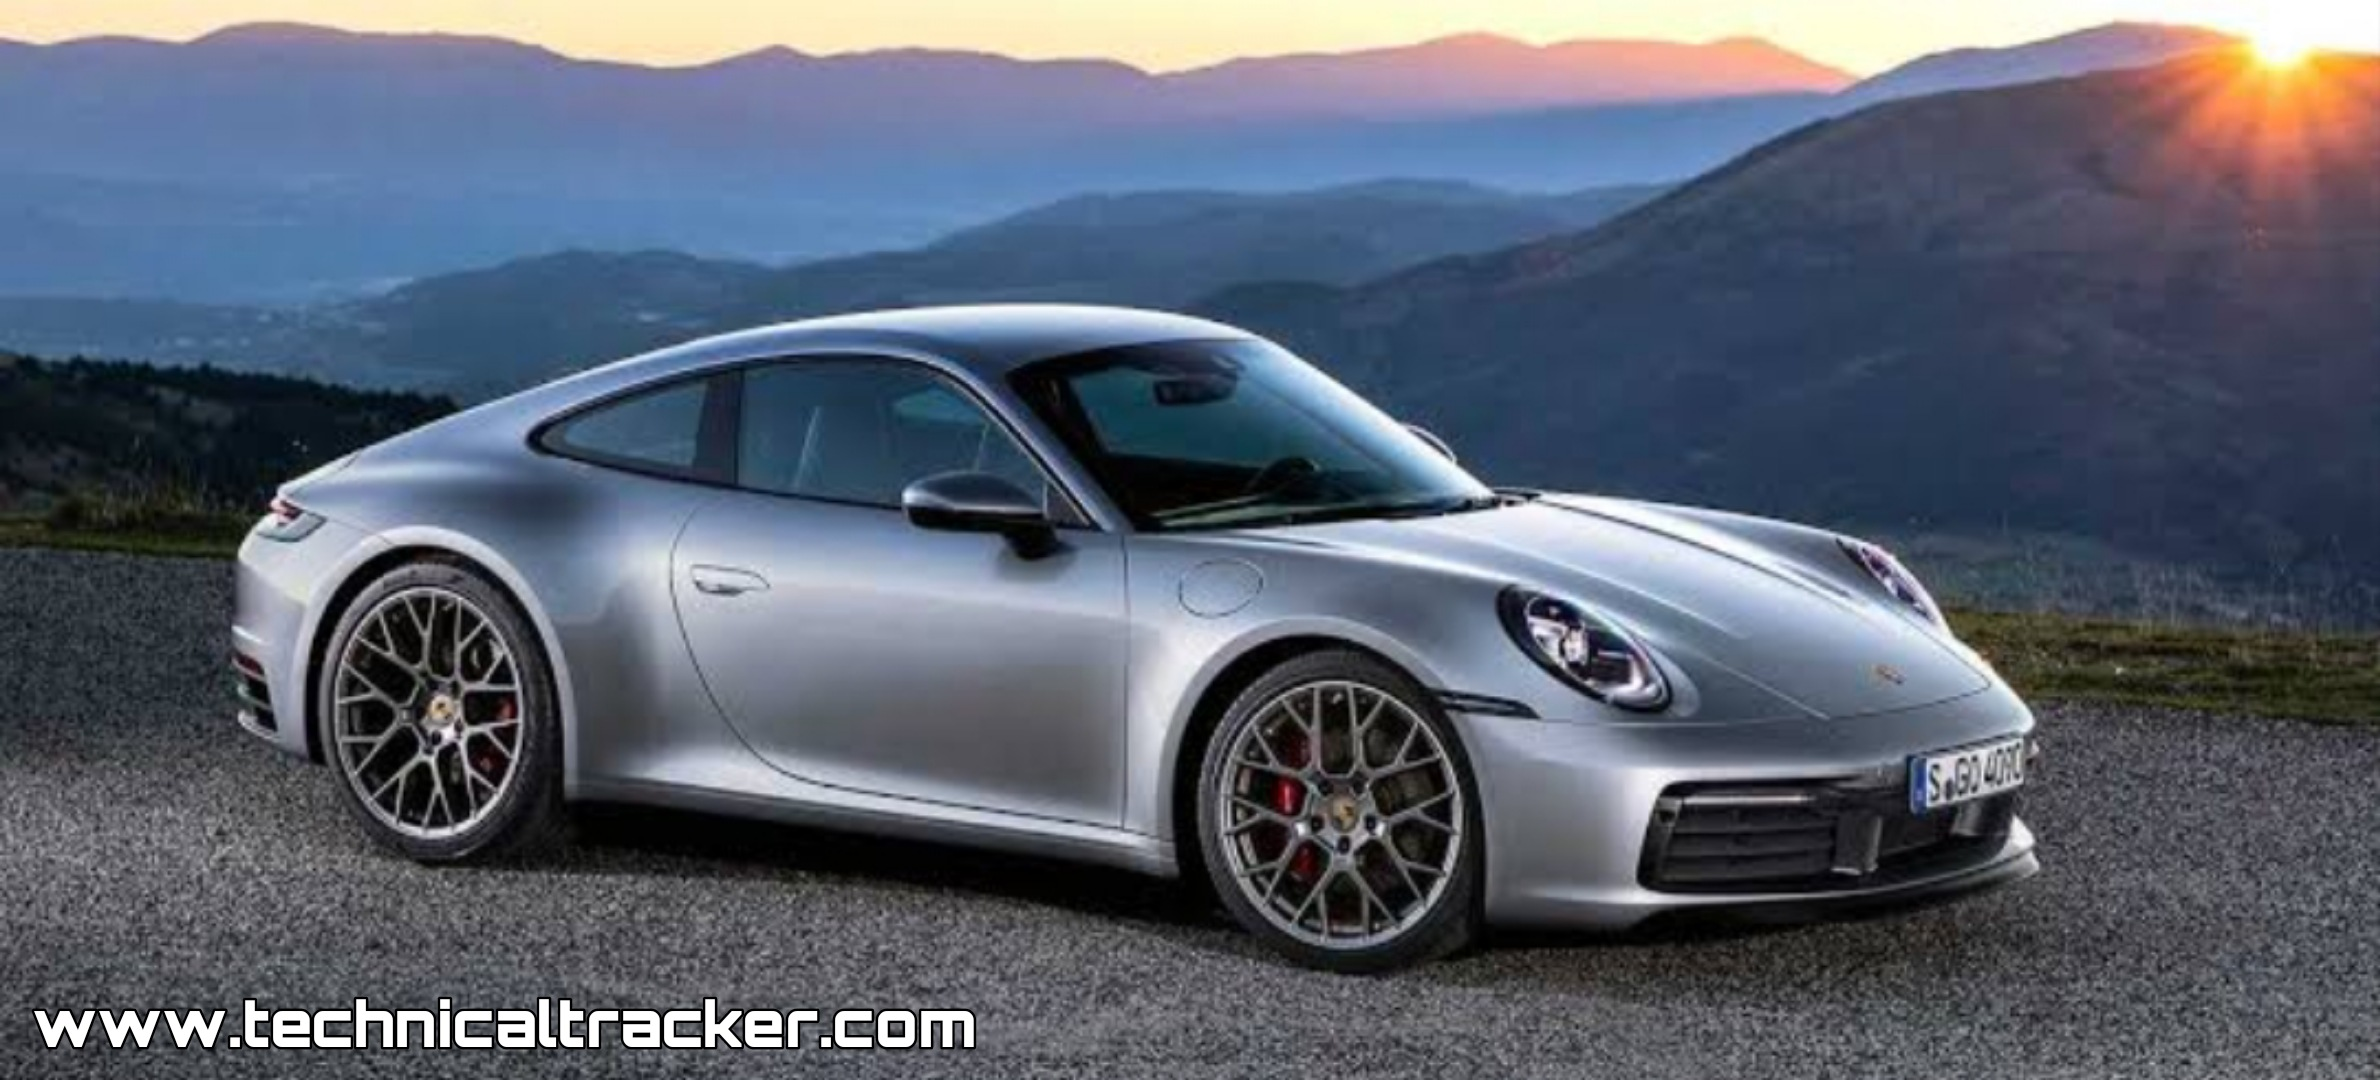 Top 10 New Sports Cars In The World